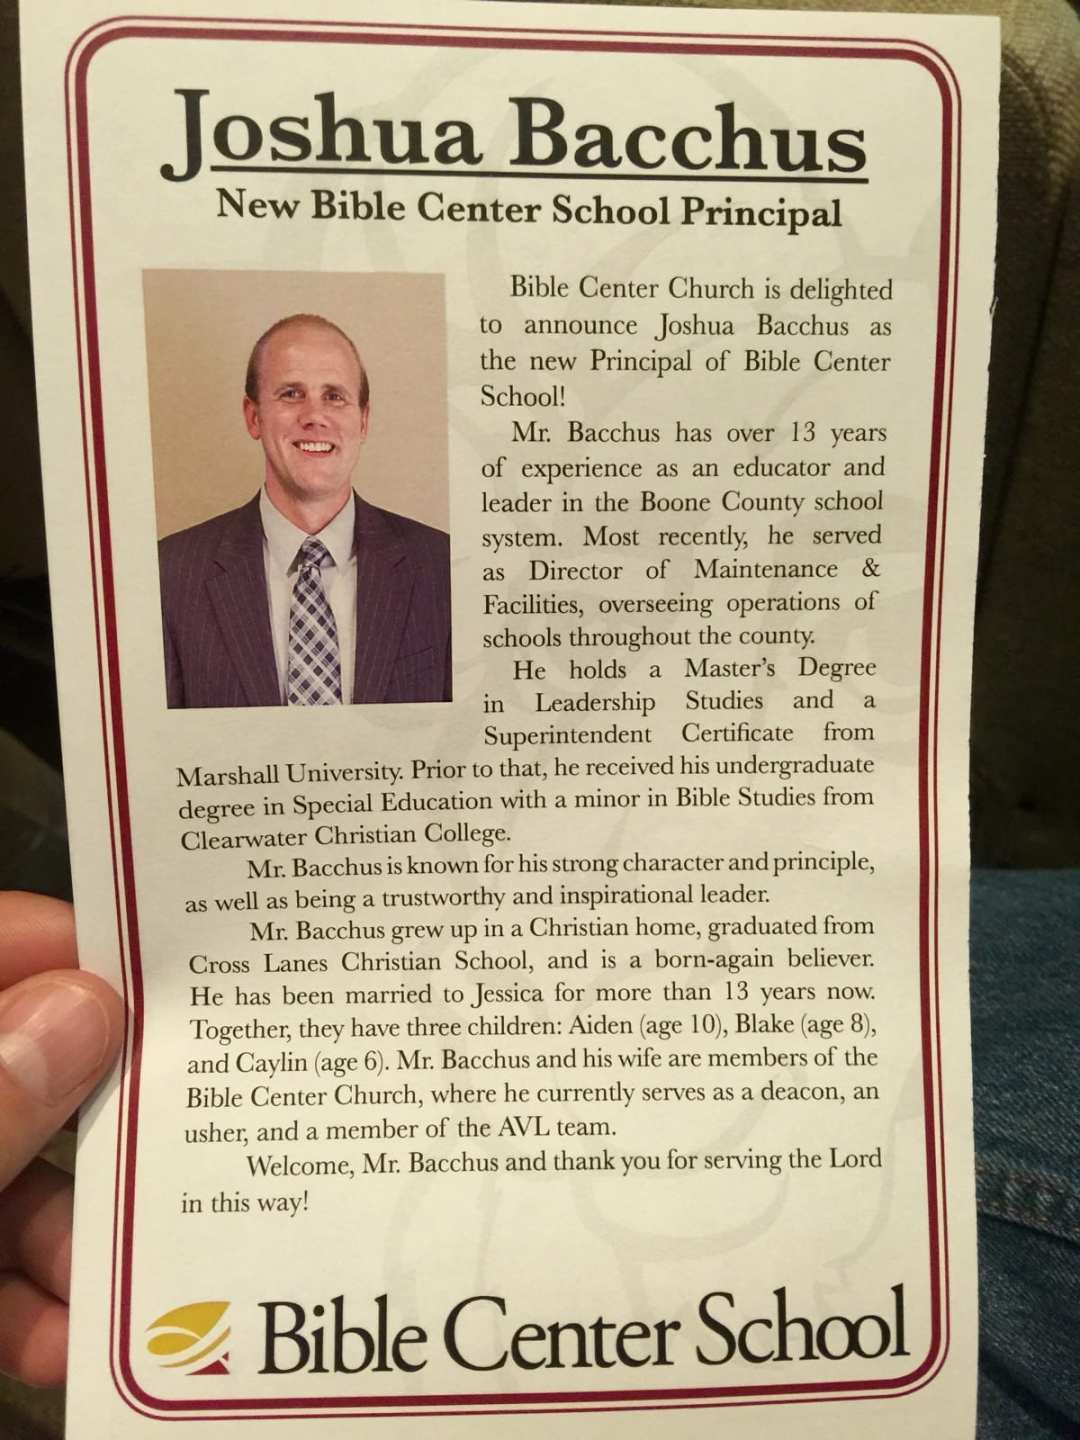 Excited to welcome Bible Center School's New Principal Josh Bacchus